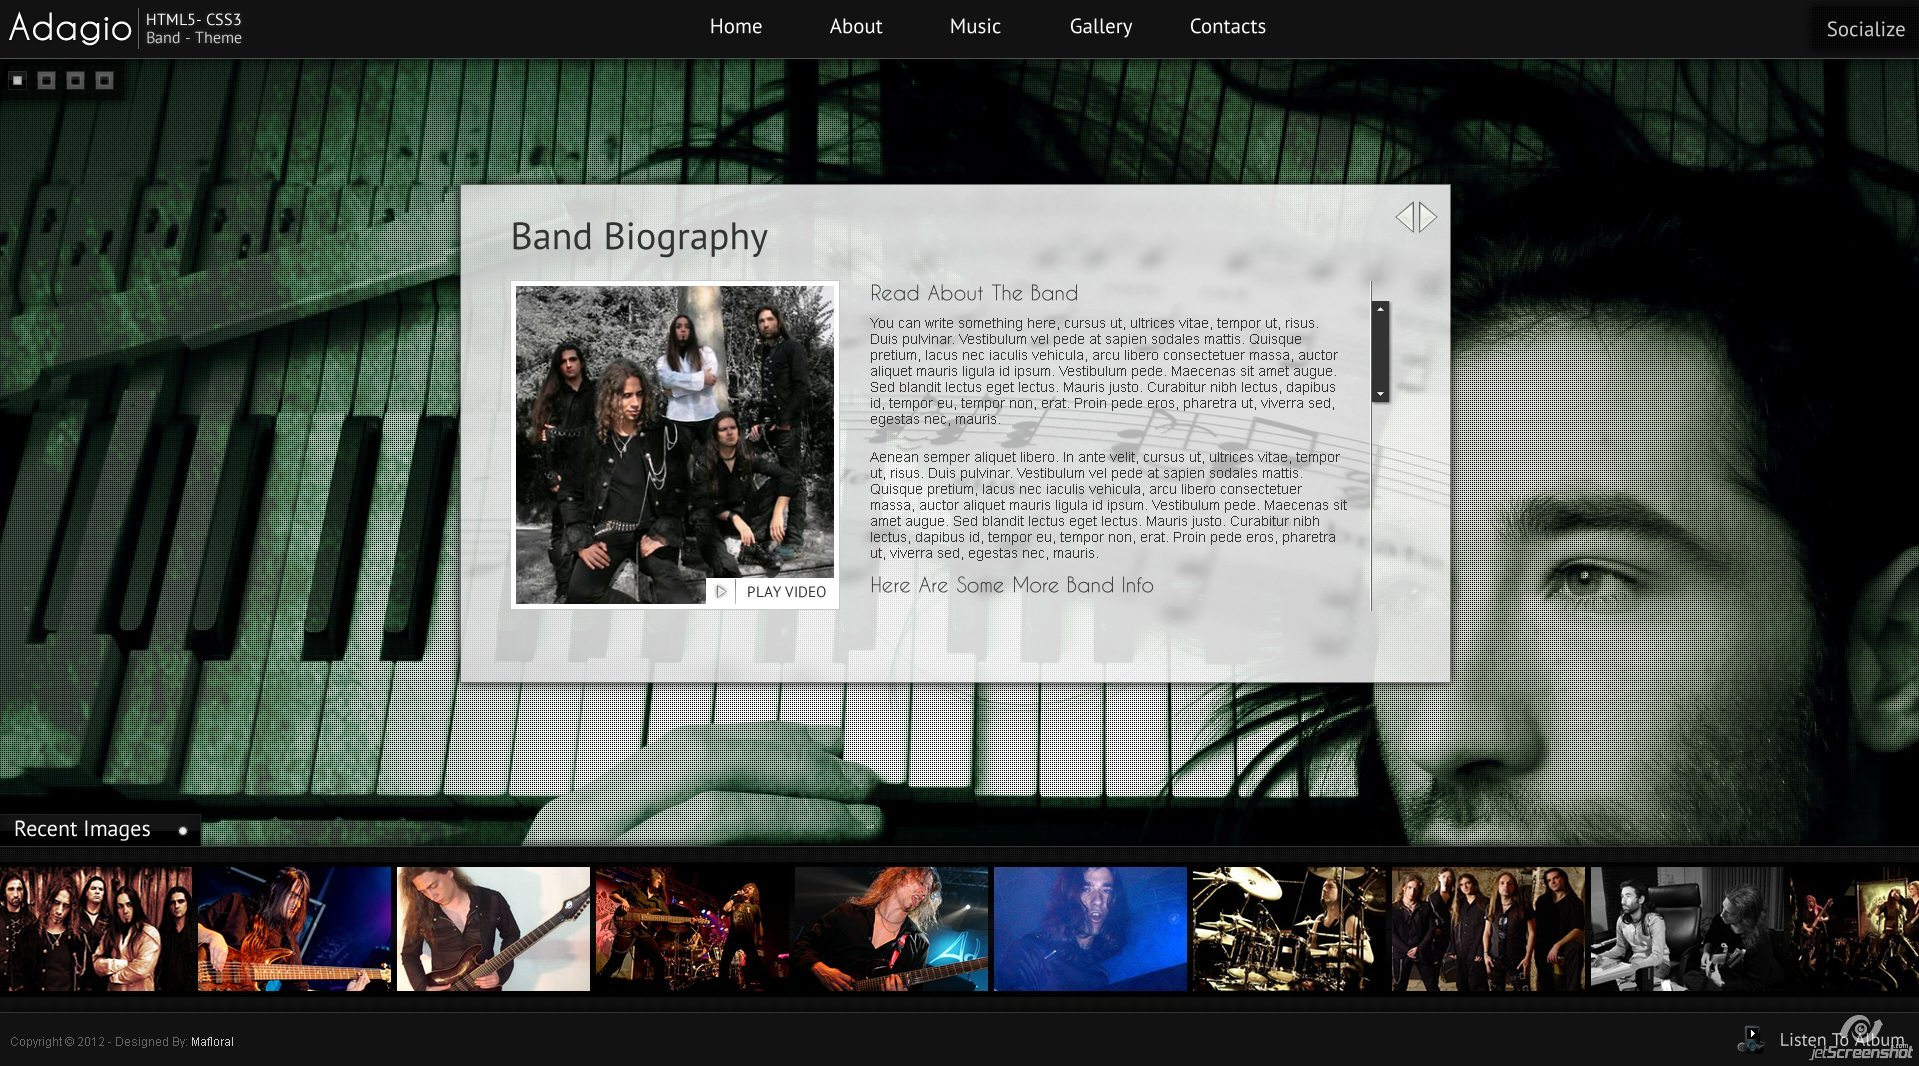 Adagio Musician Template - HTML5 - CSS3 - Bio Page  - Custom content scroller, Hover on image to open video in lightbox.